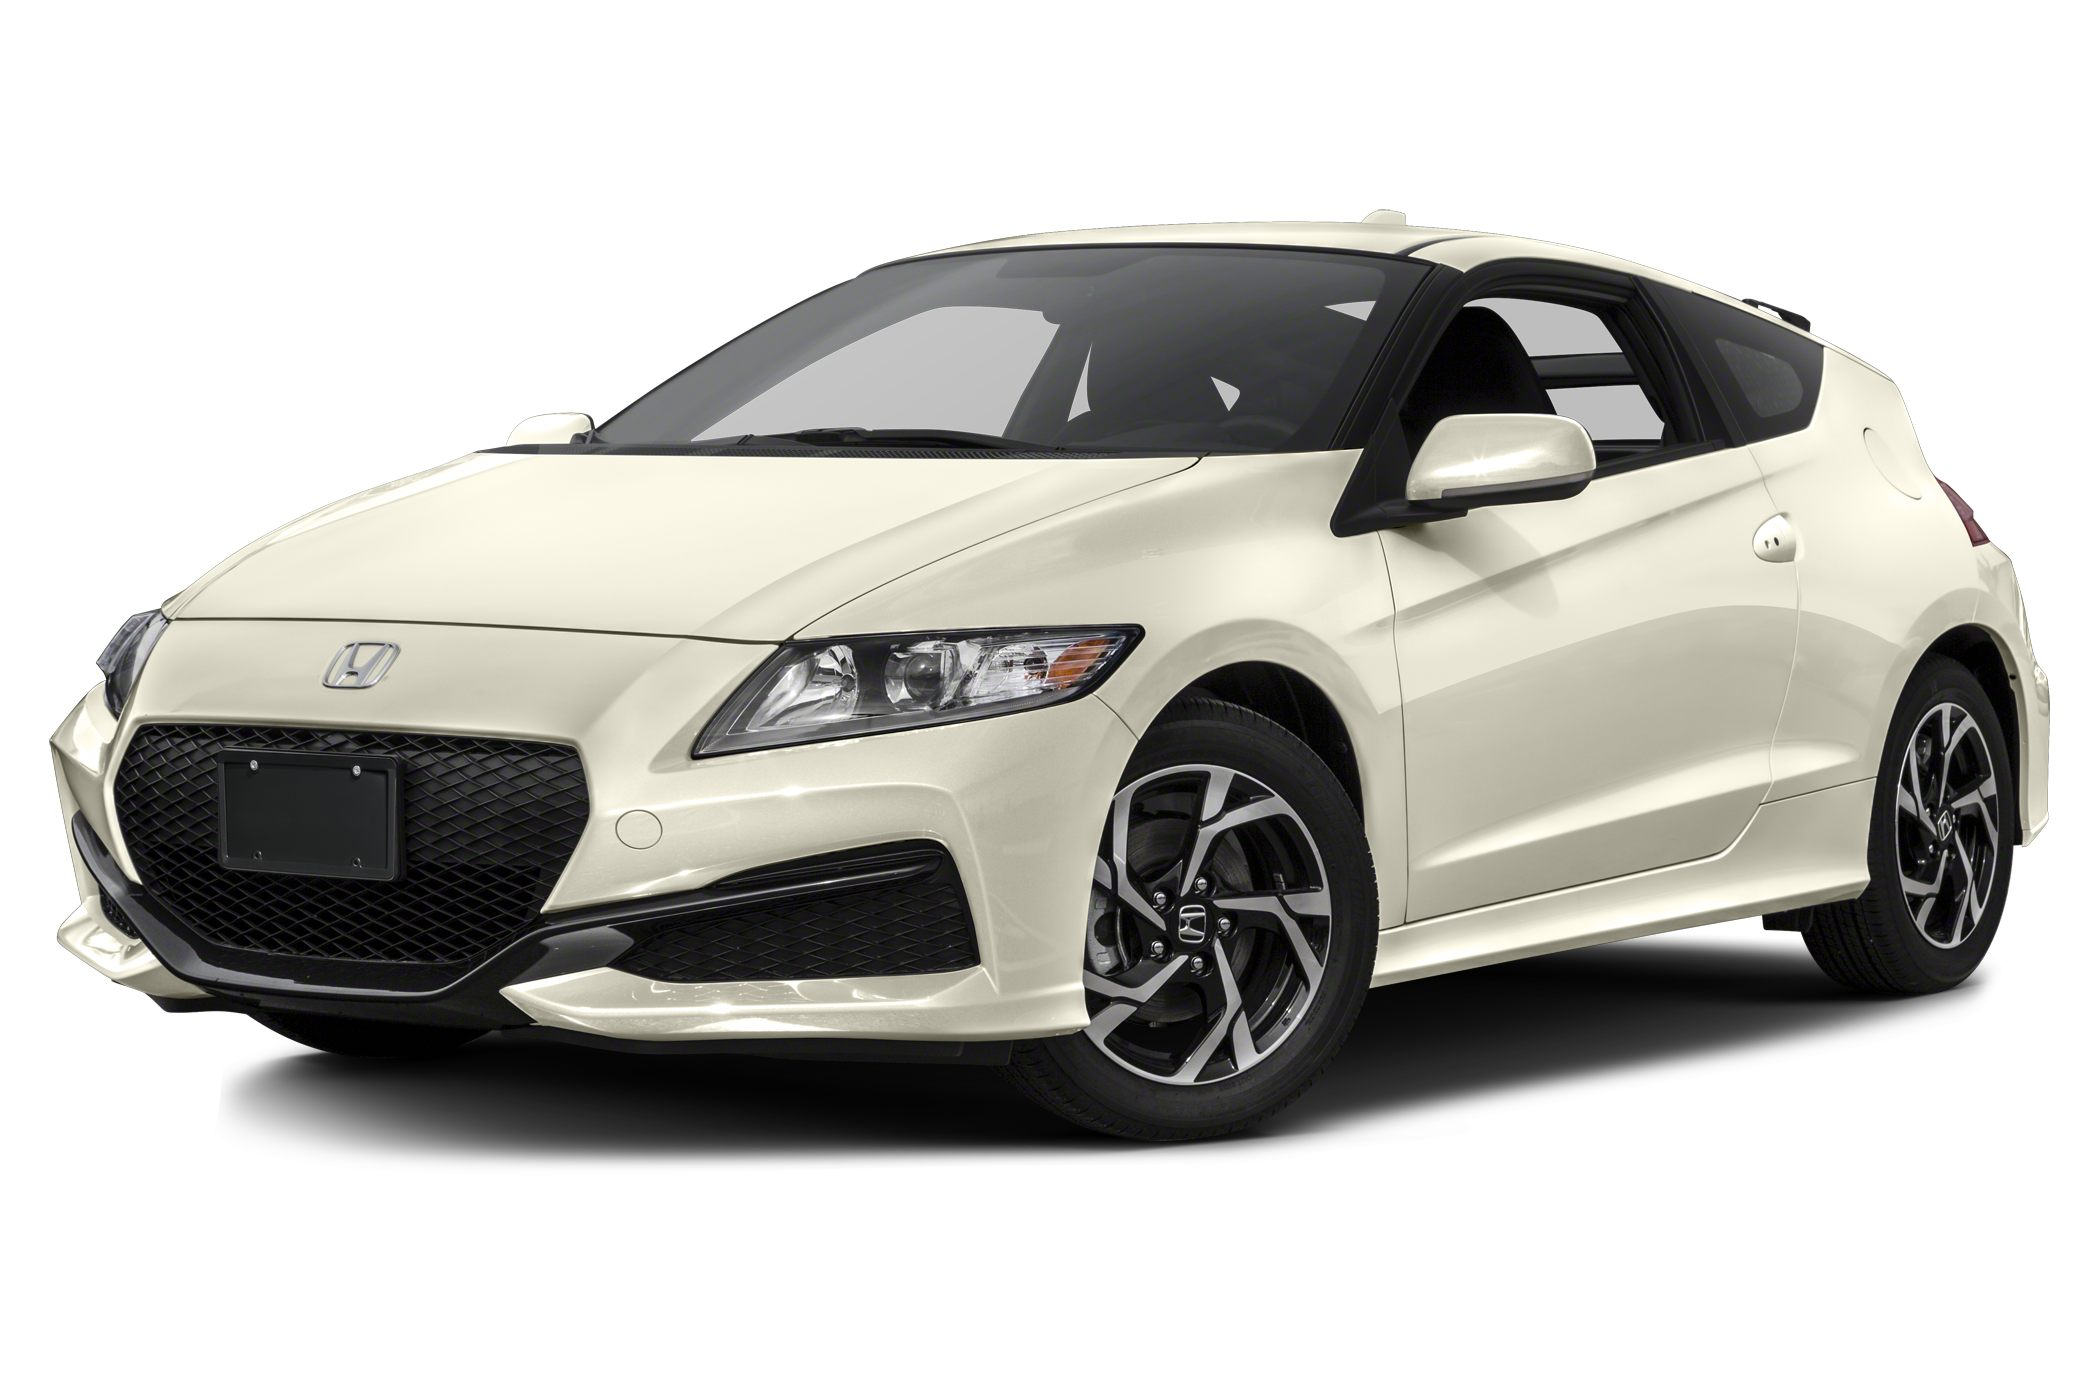 2014 honda hpd cr z autoblog. Black Bedroom Furniture Sets. Home Design Ideas